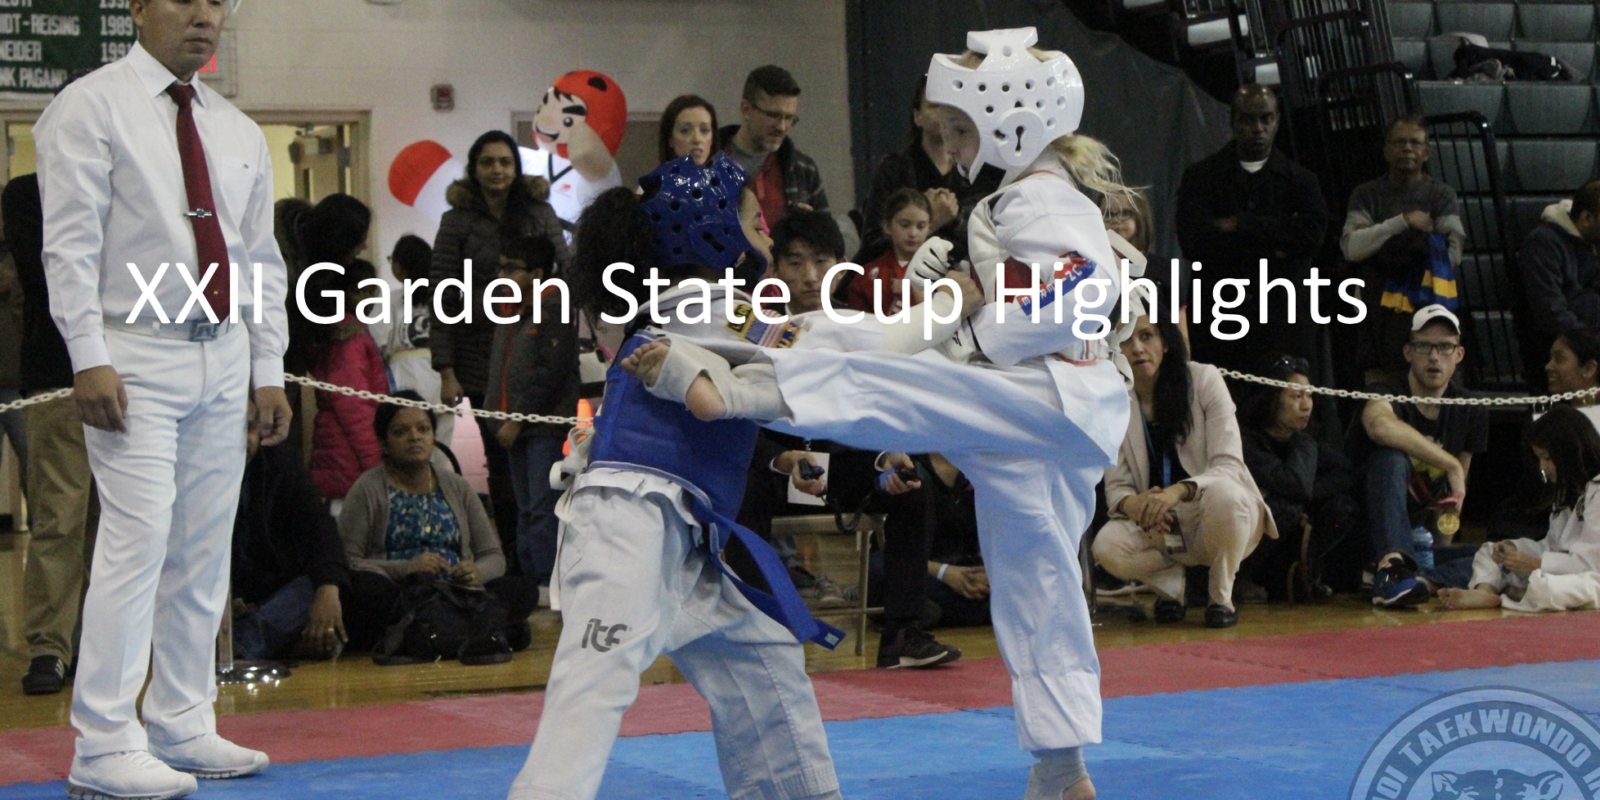 XXII Garden State Cup Highlights